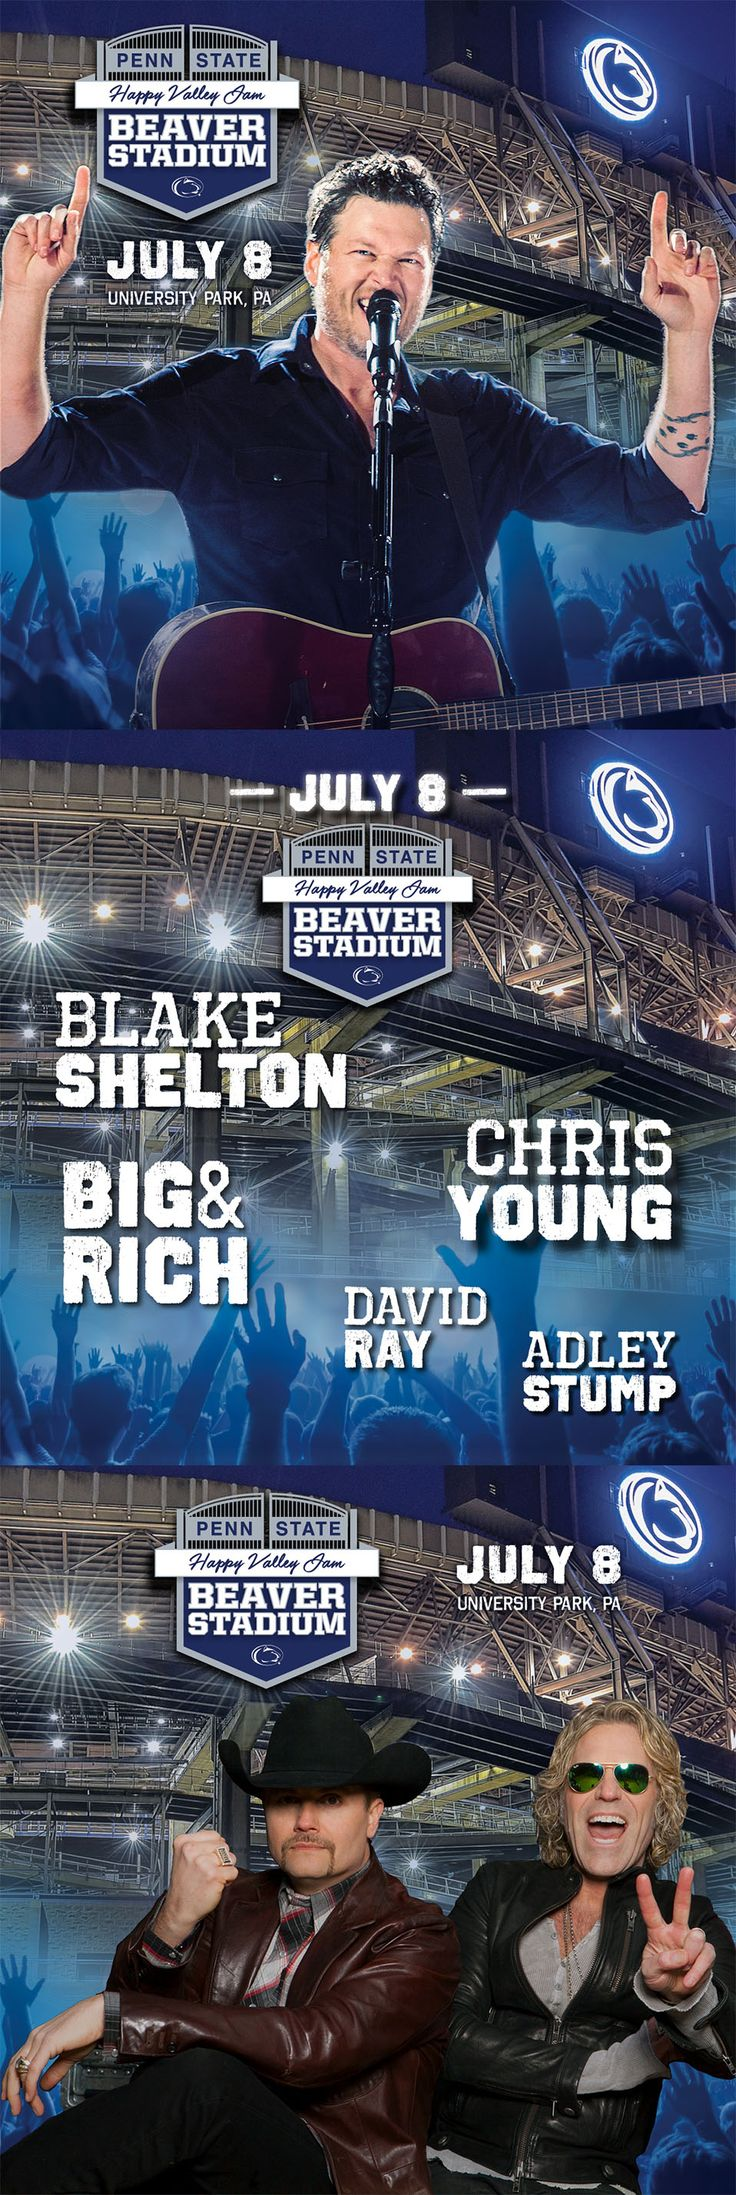 For the first time in Beaver Stadium history, a concert will be the main attraction. Click to read more.